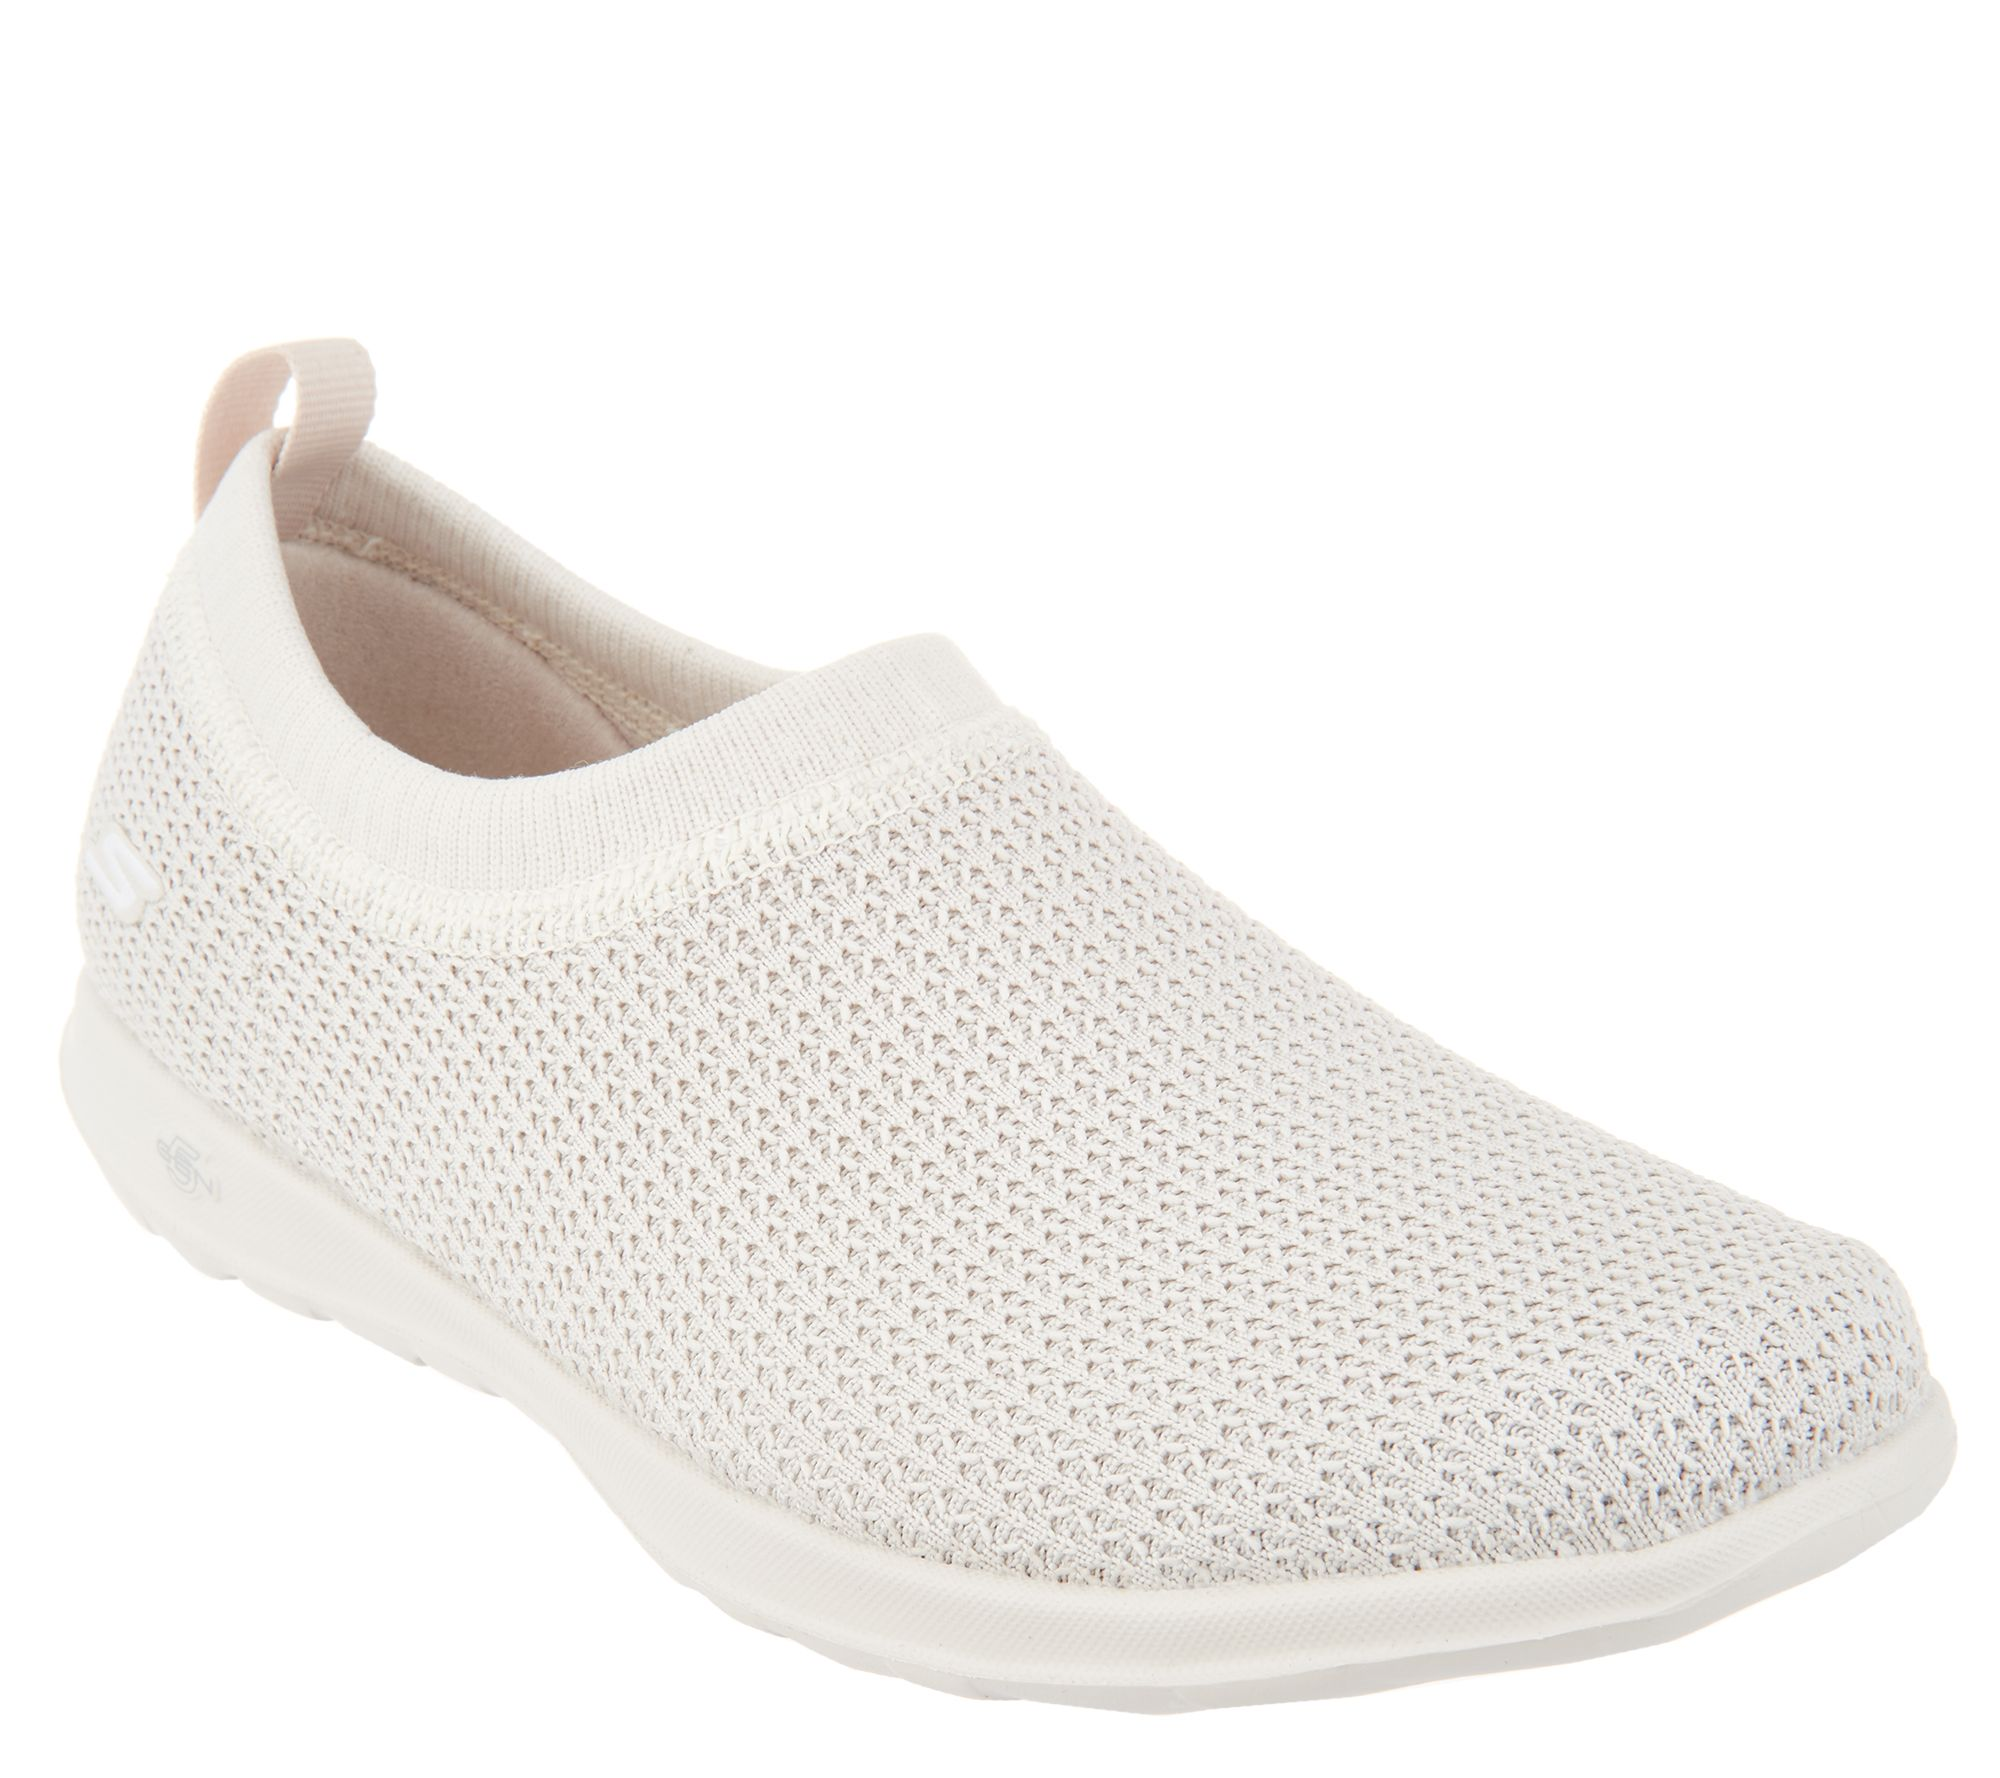 9aef67706feb Skechers GO Walk Lite Slip-on Shoes - Eclectic - Page 1 — QVC.com